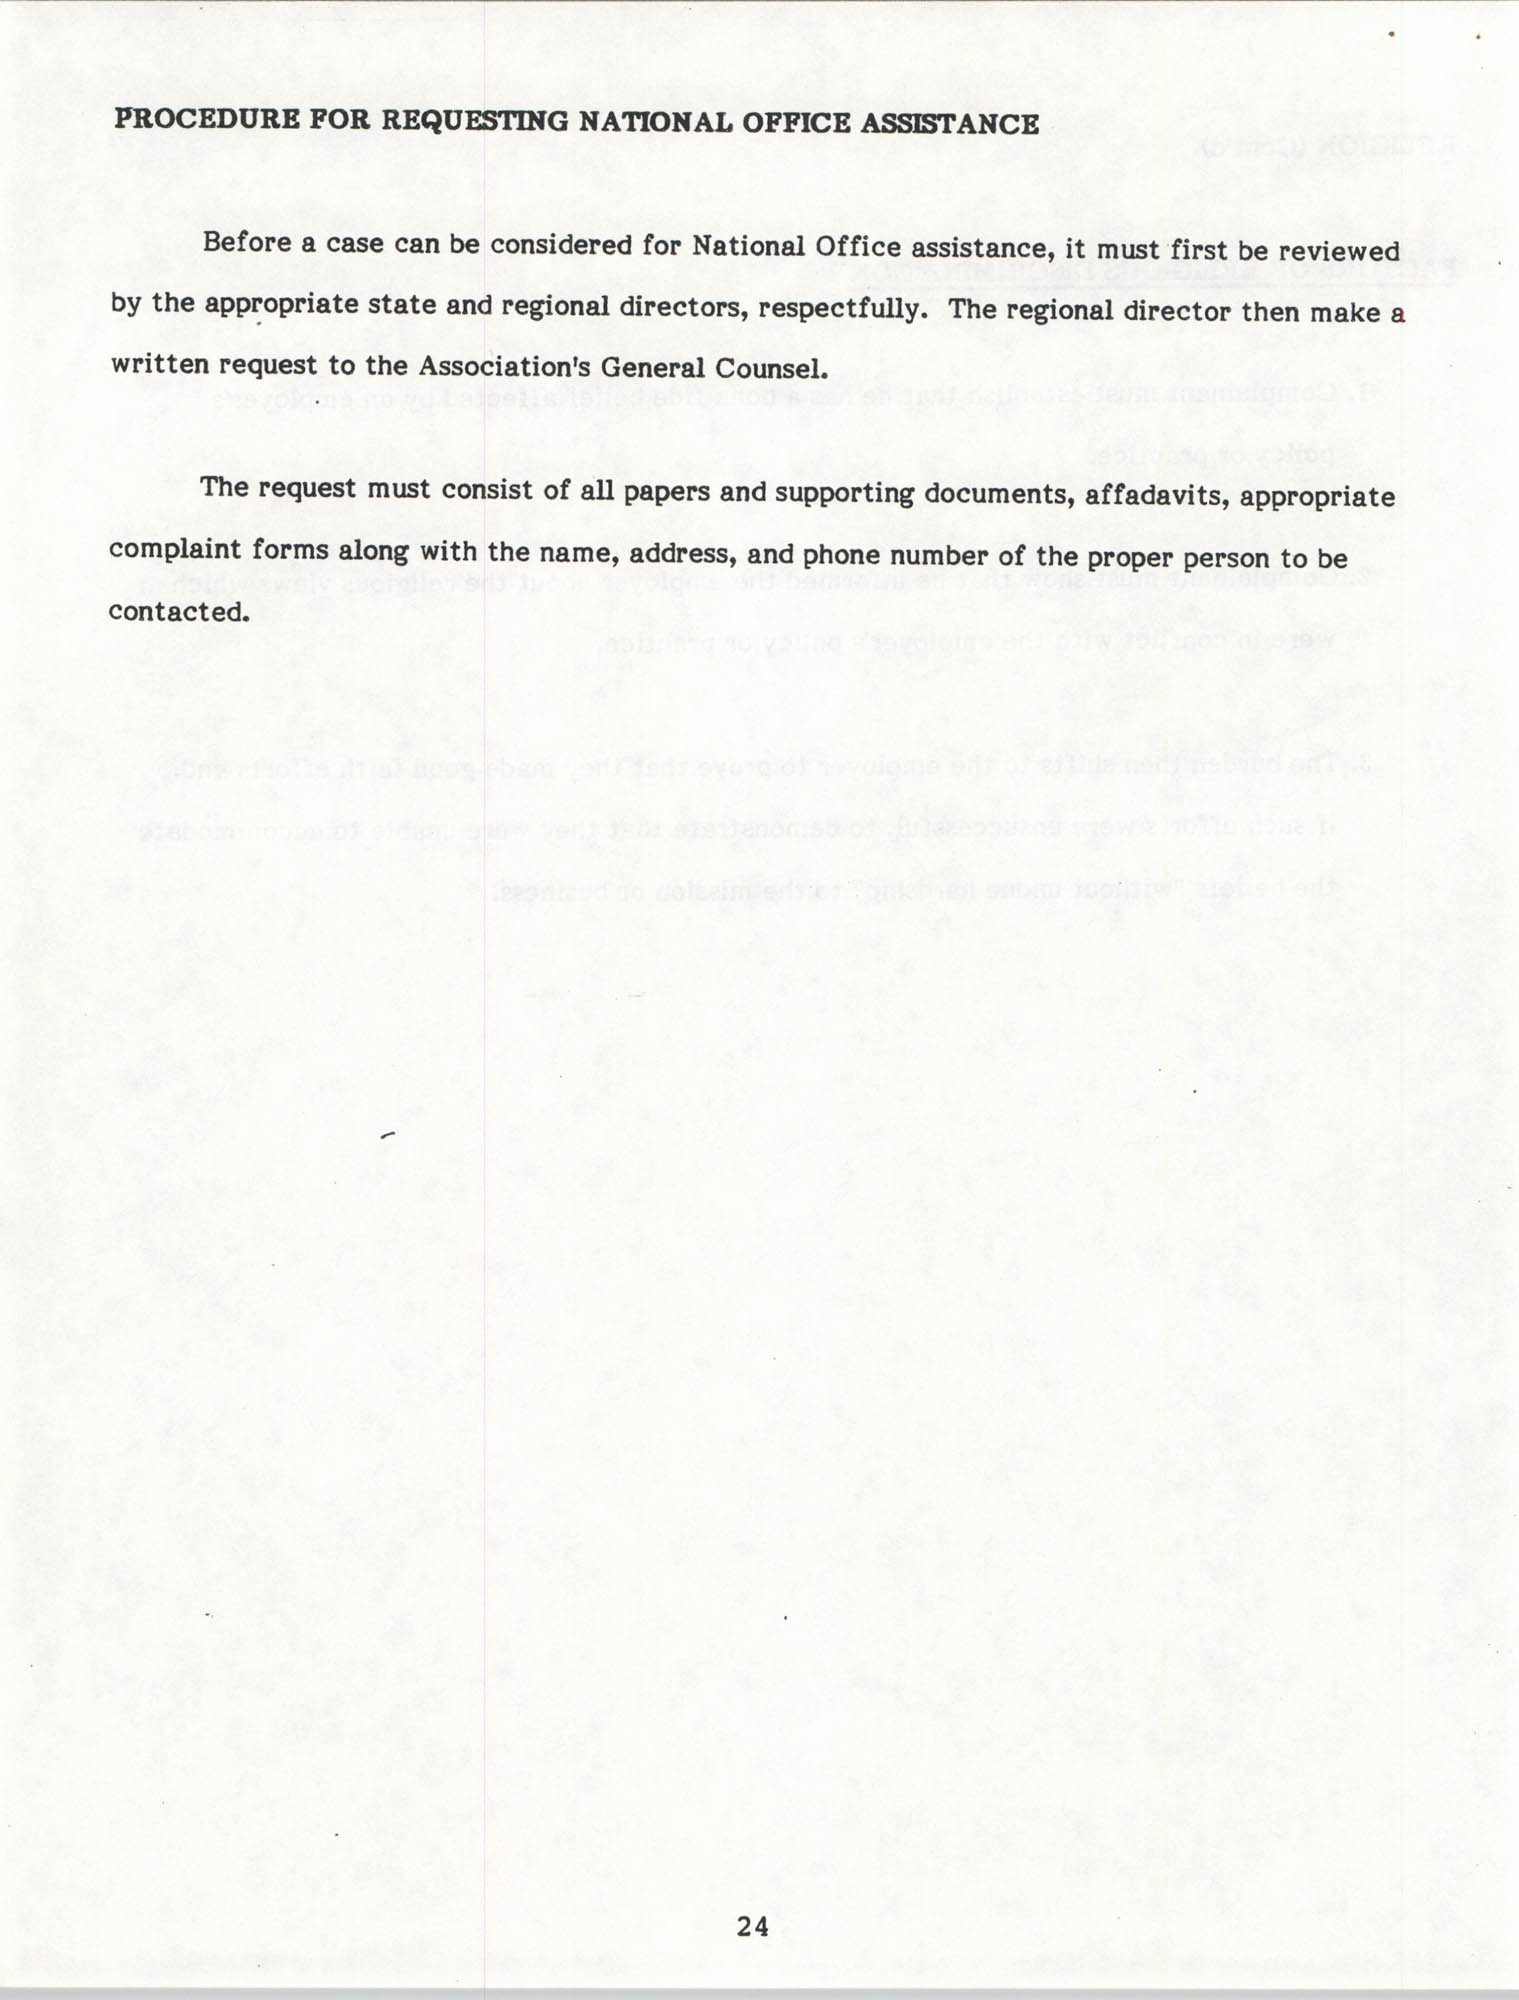 Handbook for Addressing Discrimination Complaints, NAACP Labor and Industry Committees, Page 24